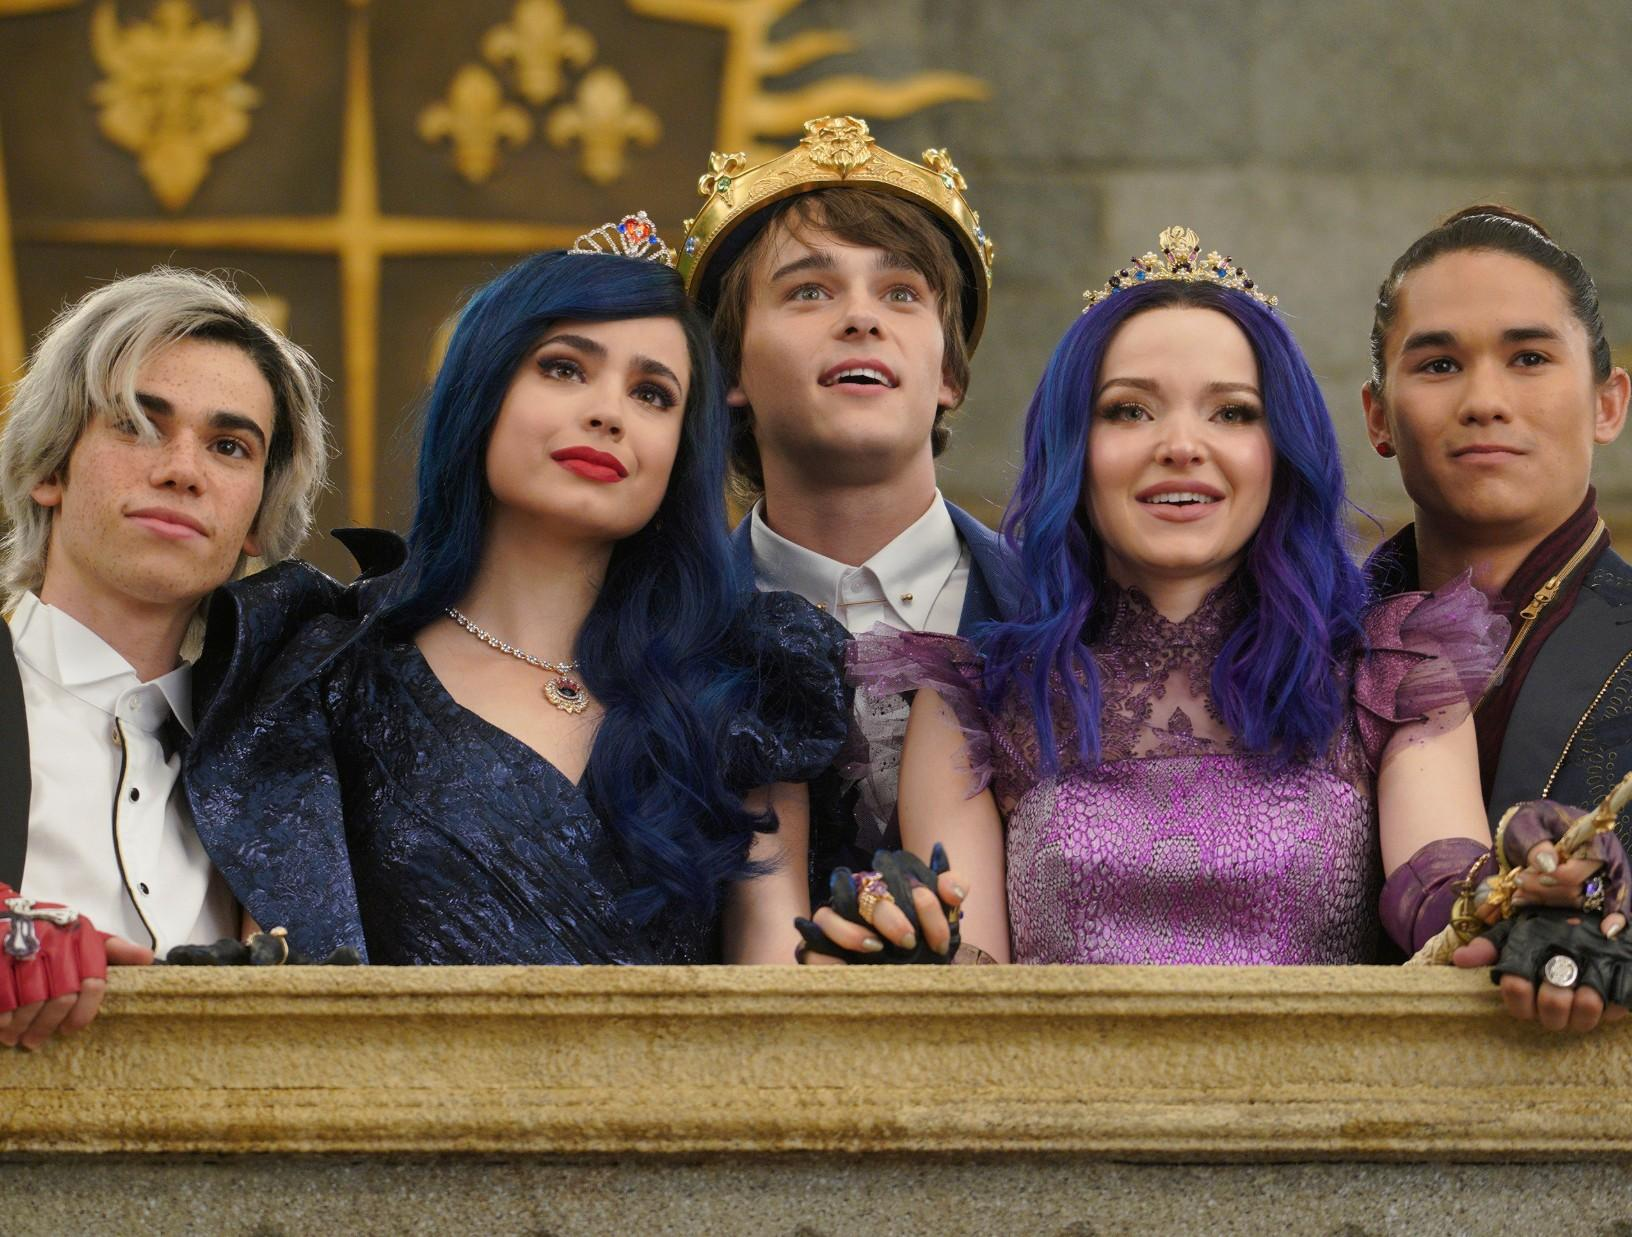 Descendants 3': Watch Movies 1 And 2 Online, On TV Before